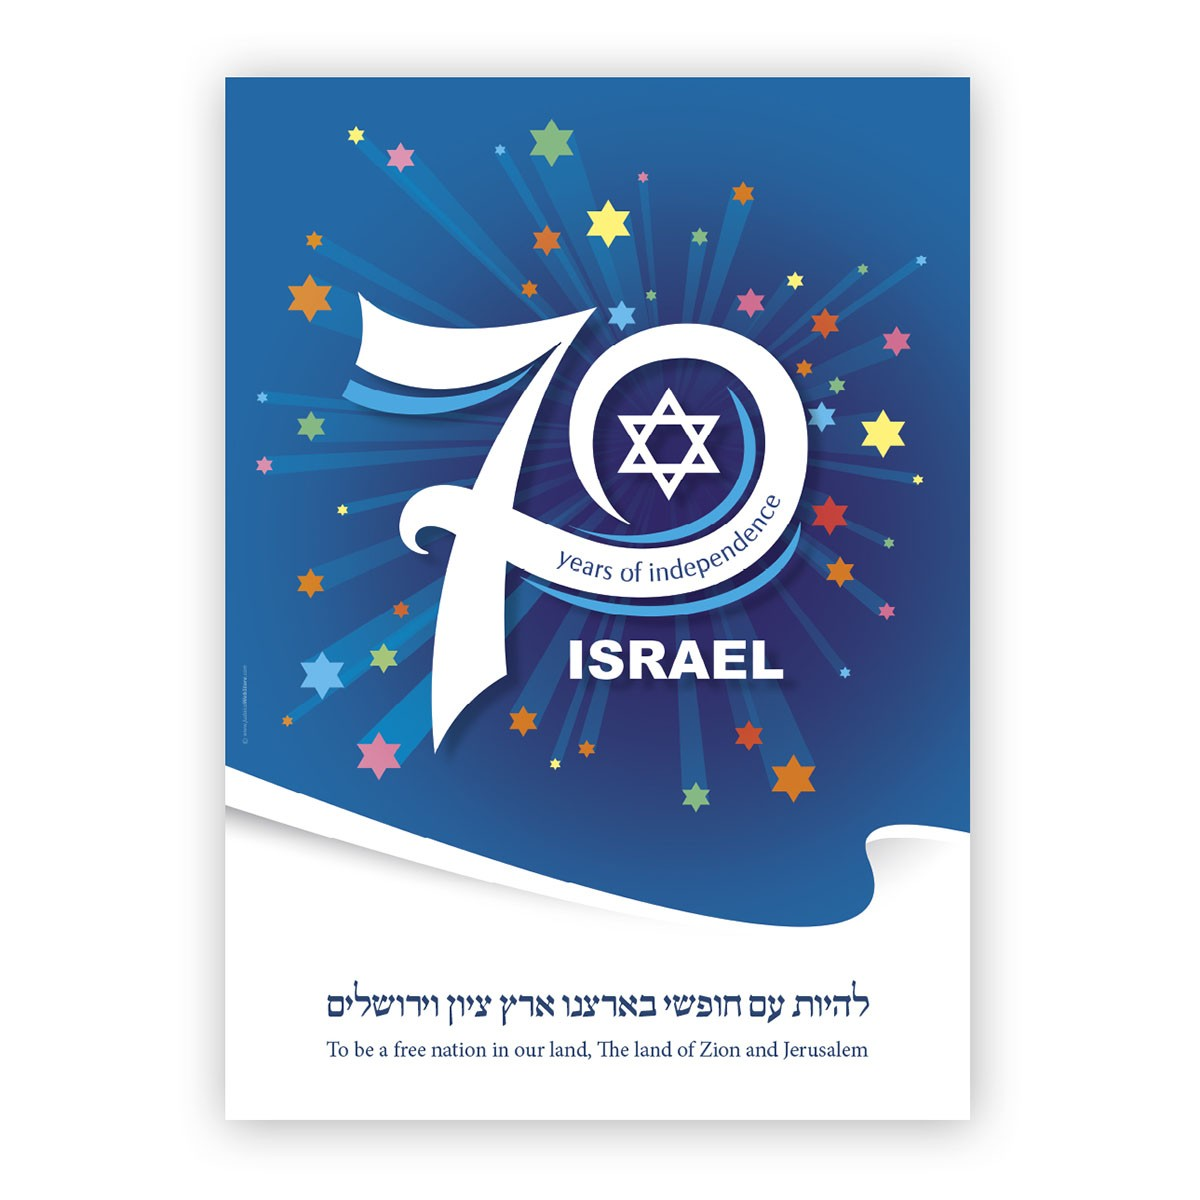 Israel Poster 70 Years Of Independence Jewish Holiday